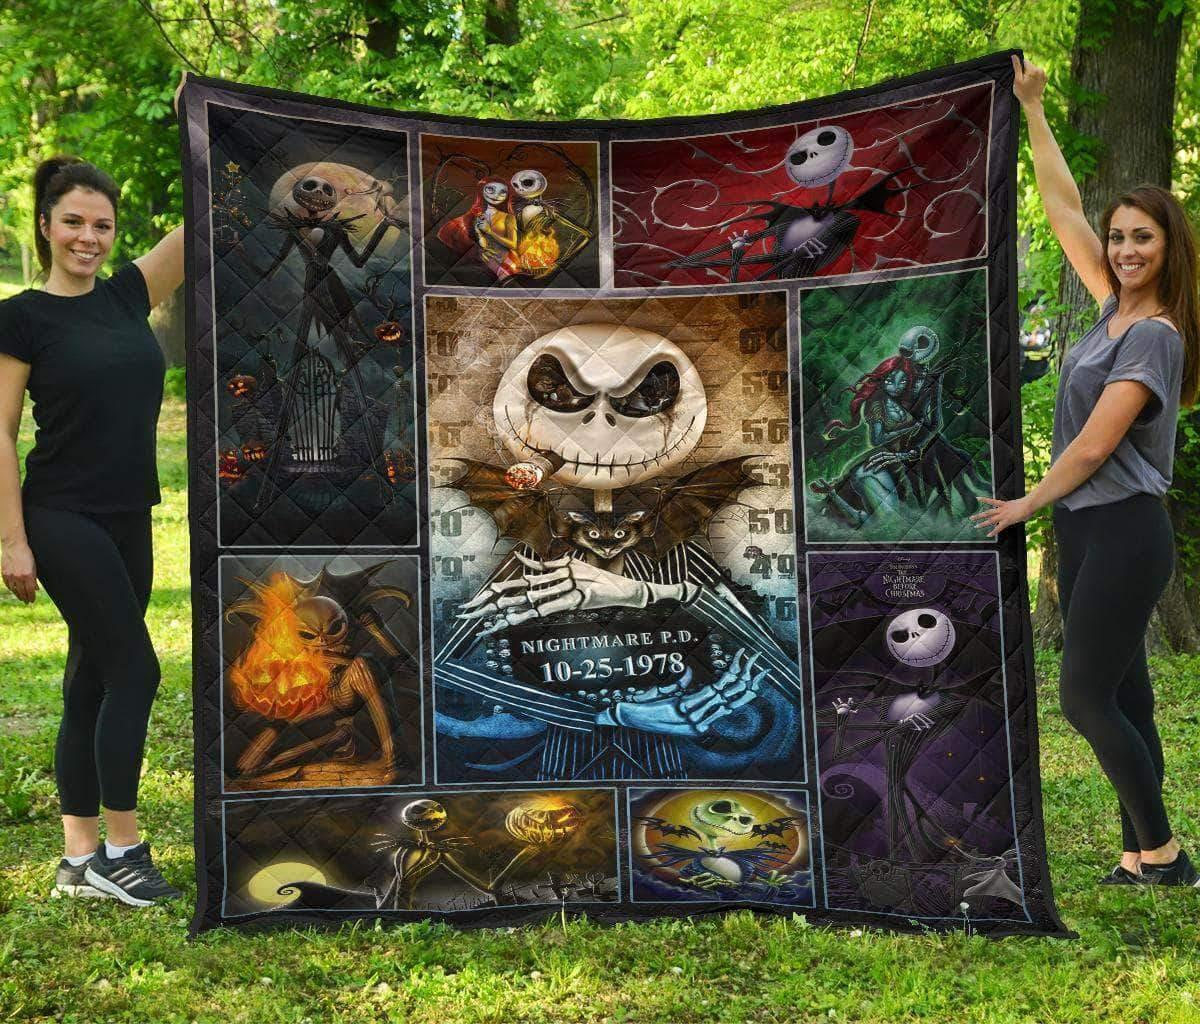 The nightmare before christmas jack skellington quilt - twin